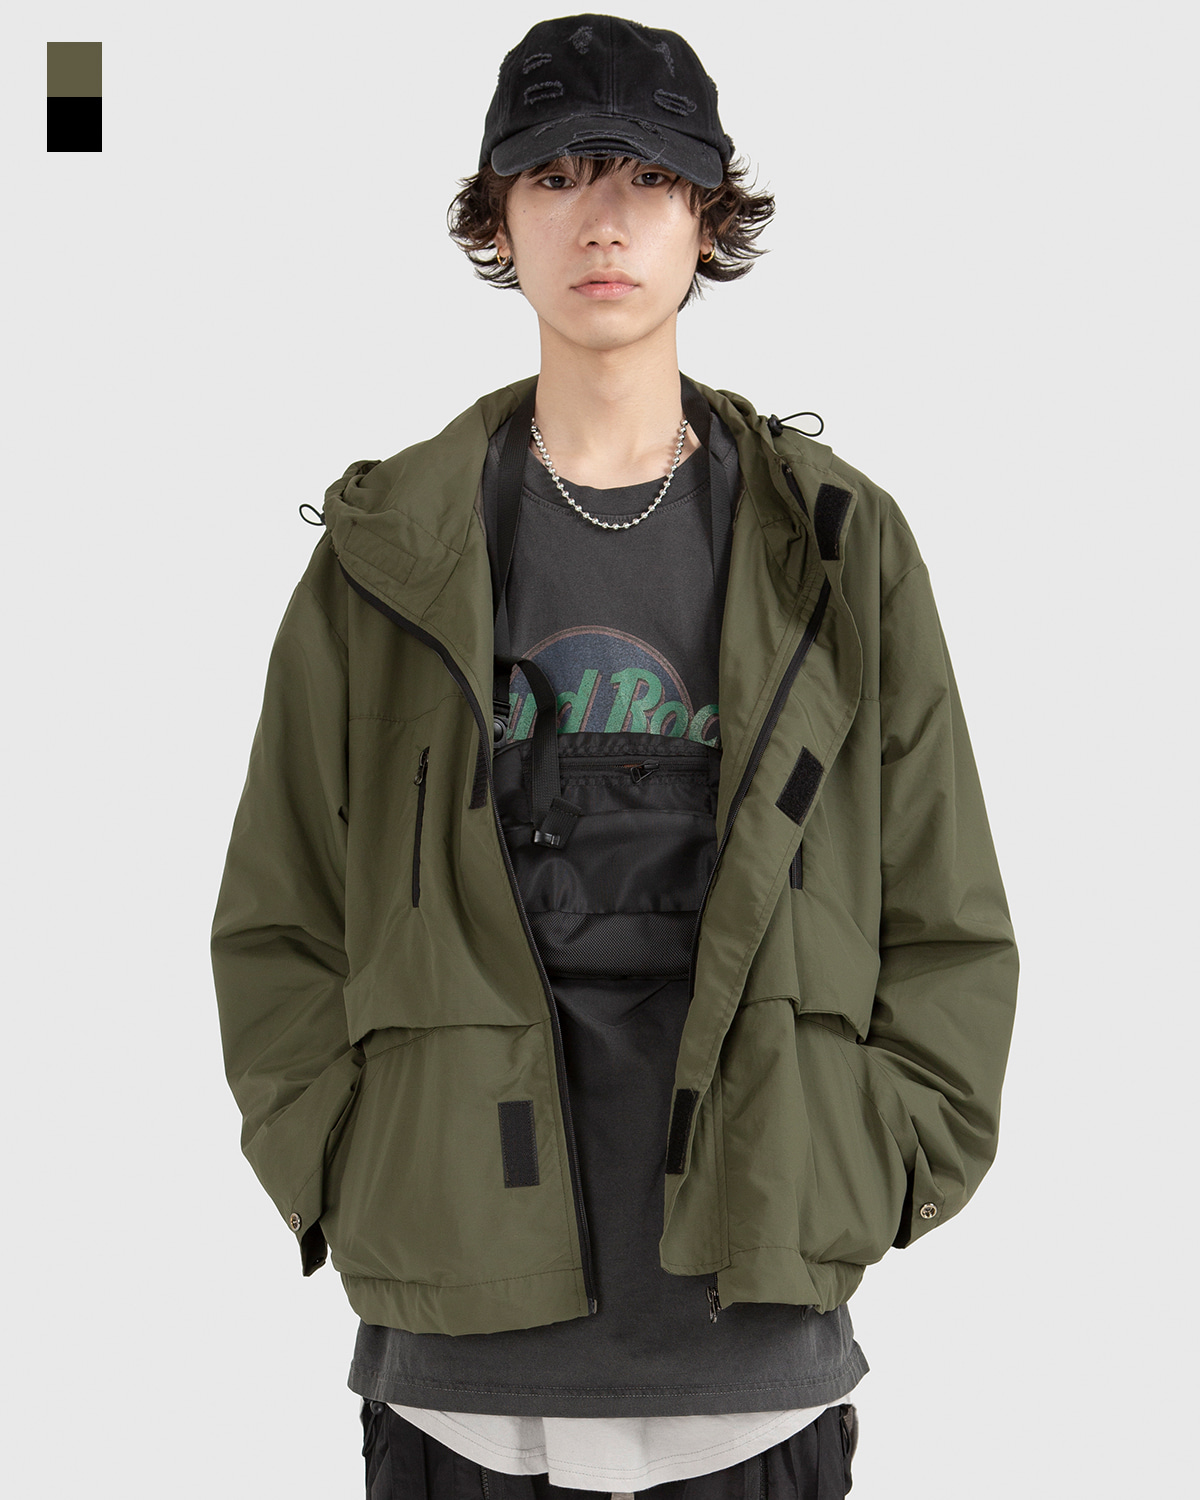 raucohouse-OUTDOOR HOODED JACKET - RAUCO HOUSE♡韓國男裝外套